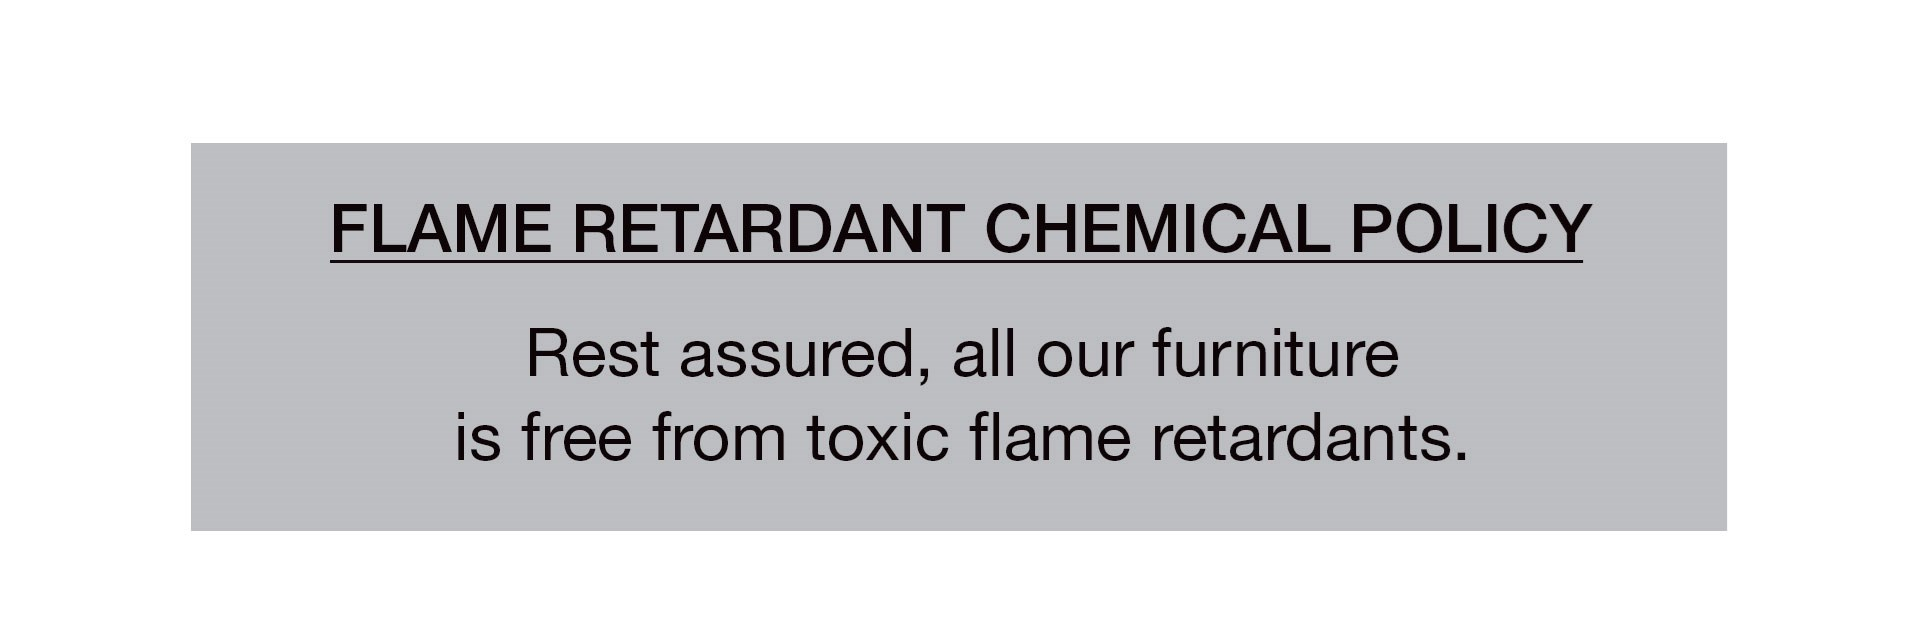 Flame Retardant Chemical Policy